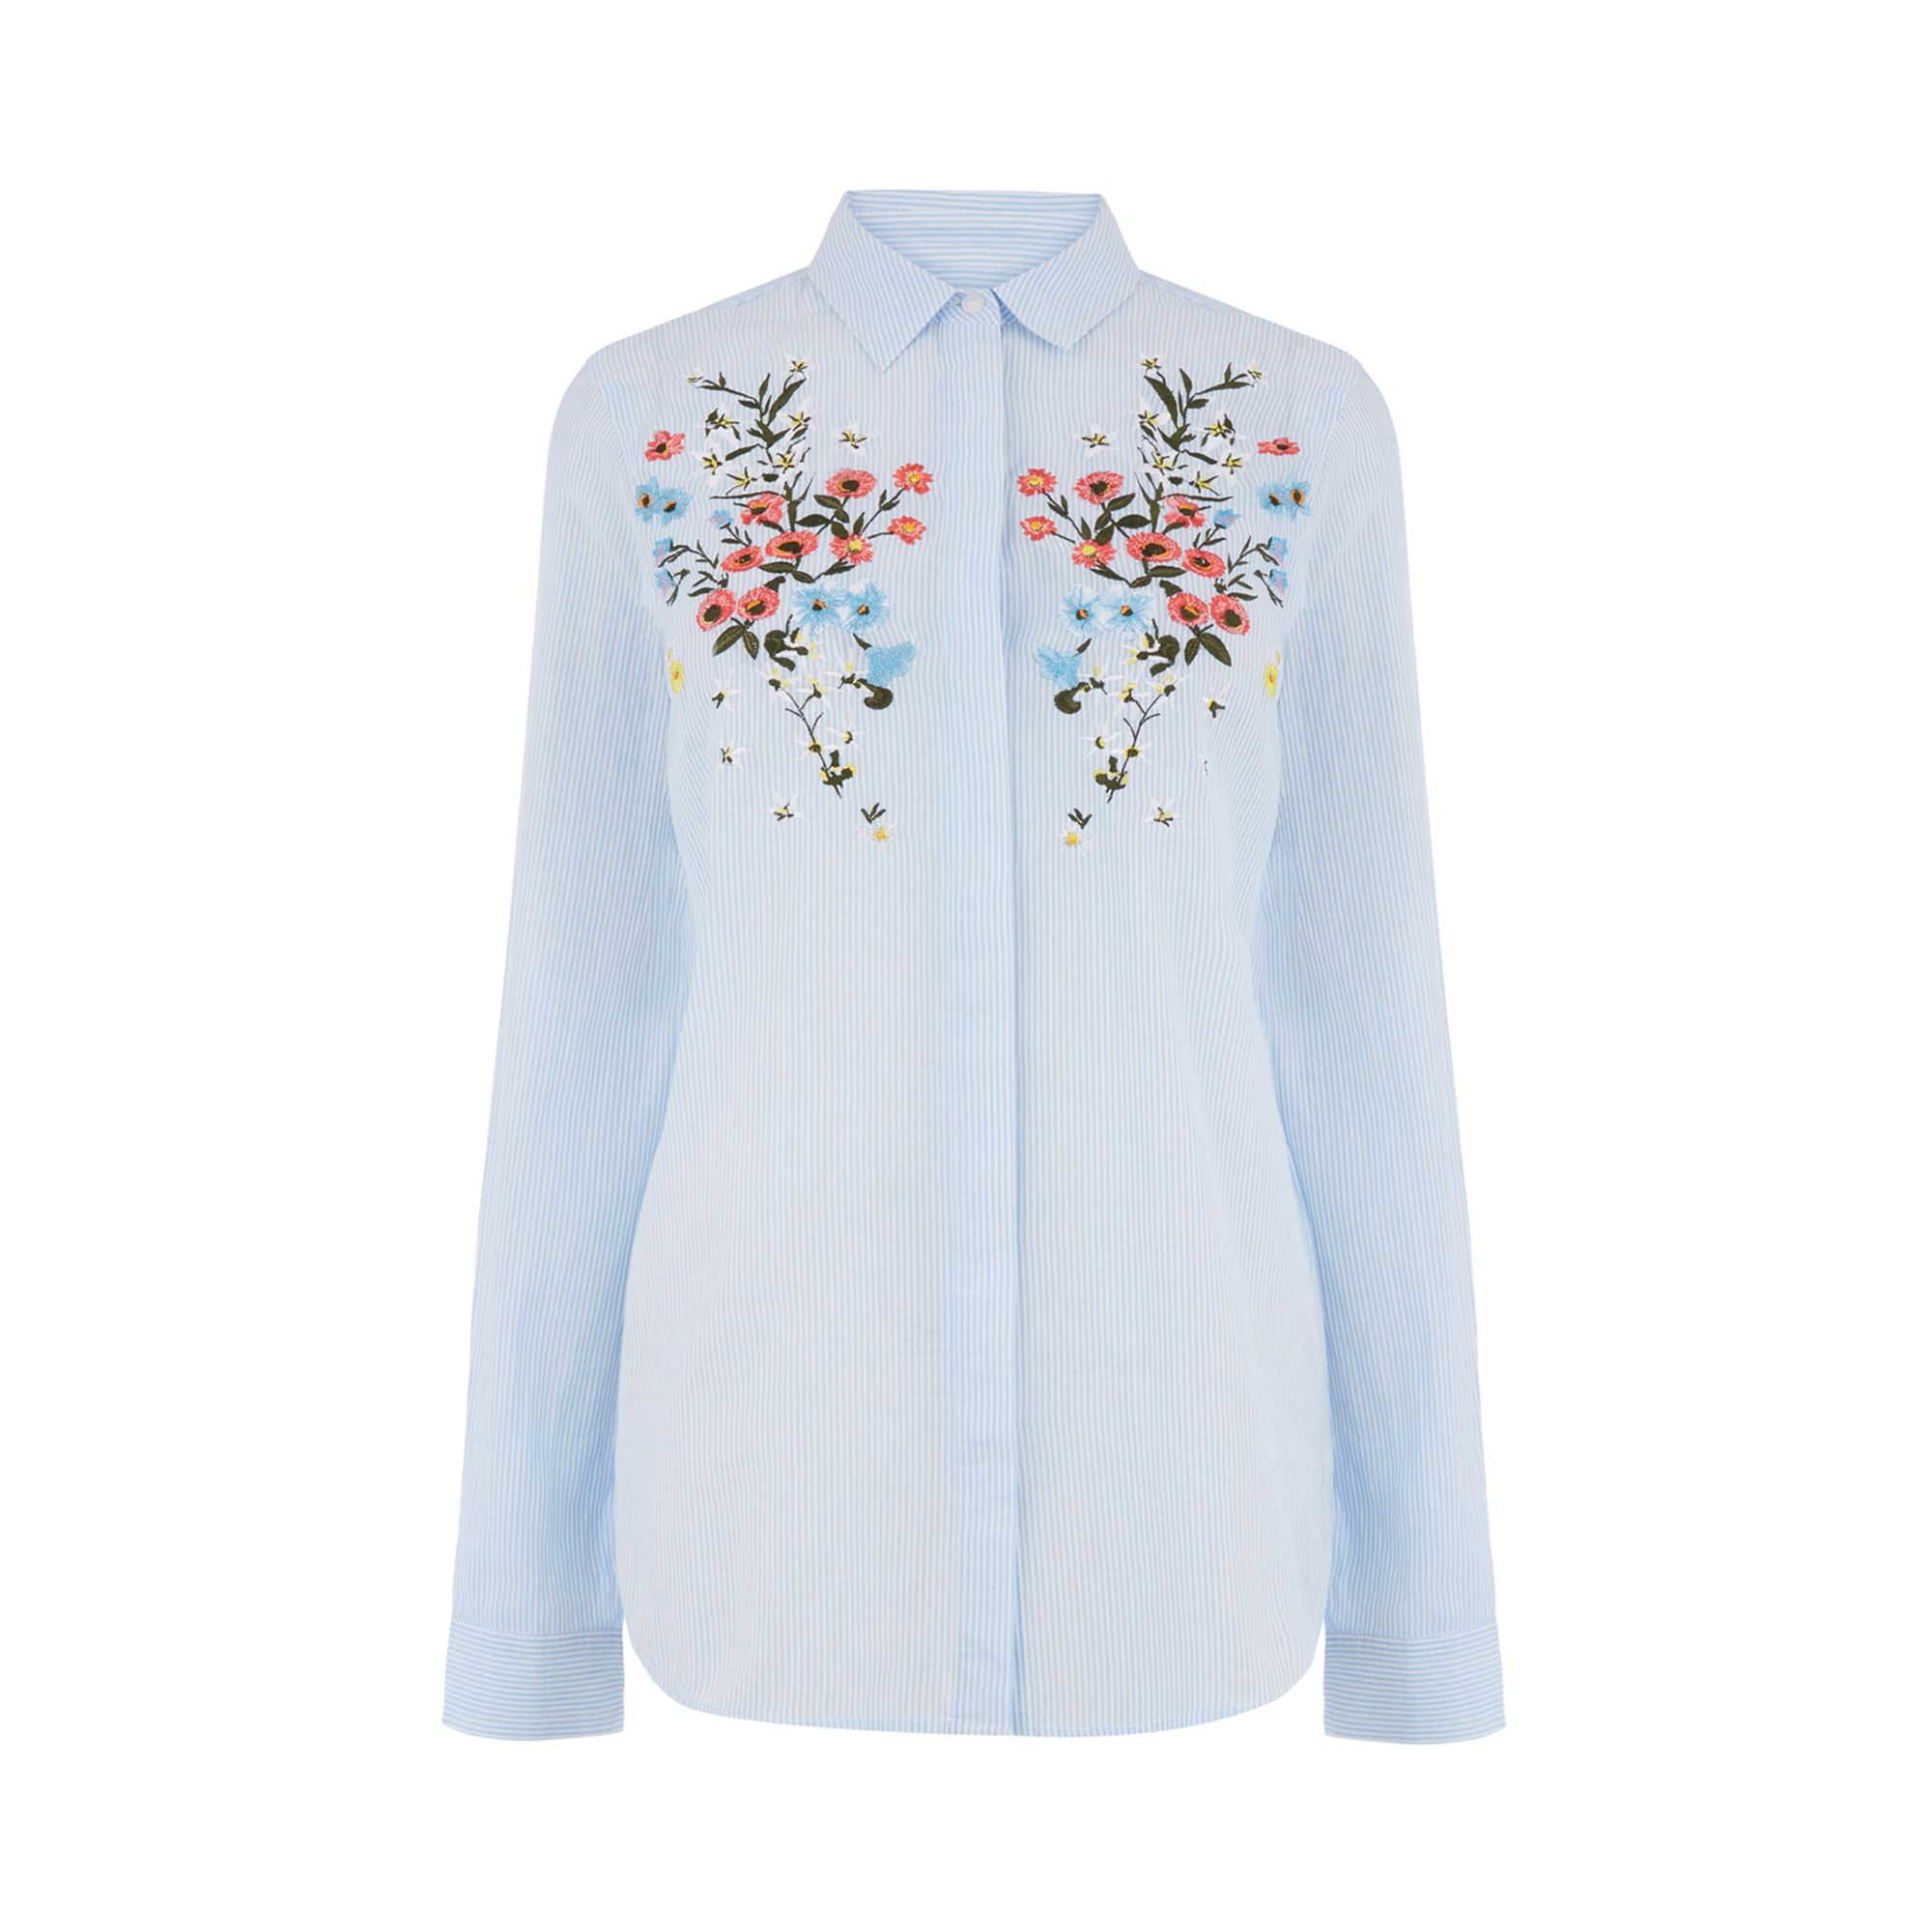 Max Studio Women's Long Sleeve Cotton Embroidered Shirt, Ivory/Red, X-Small